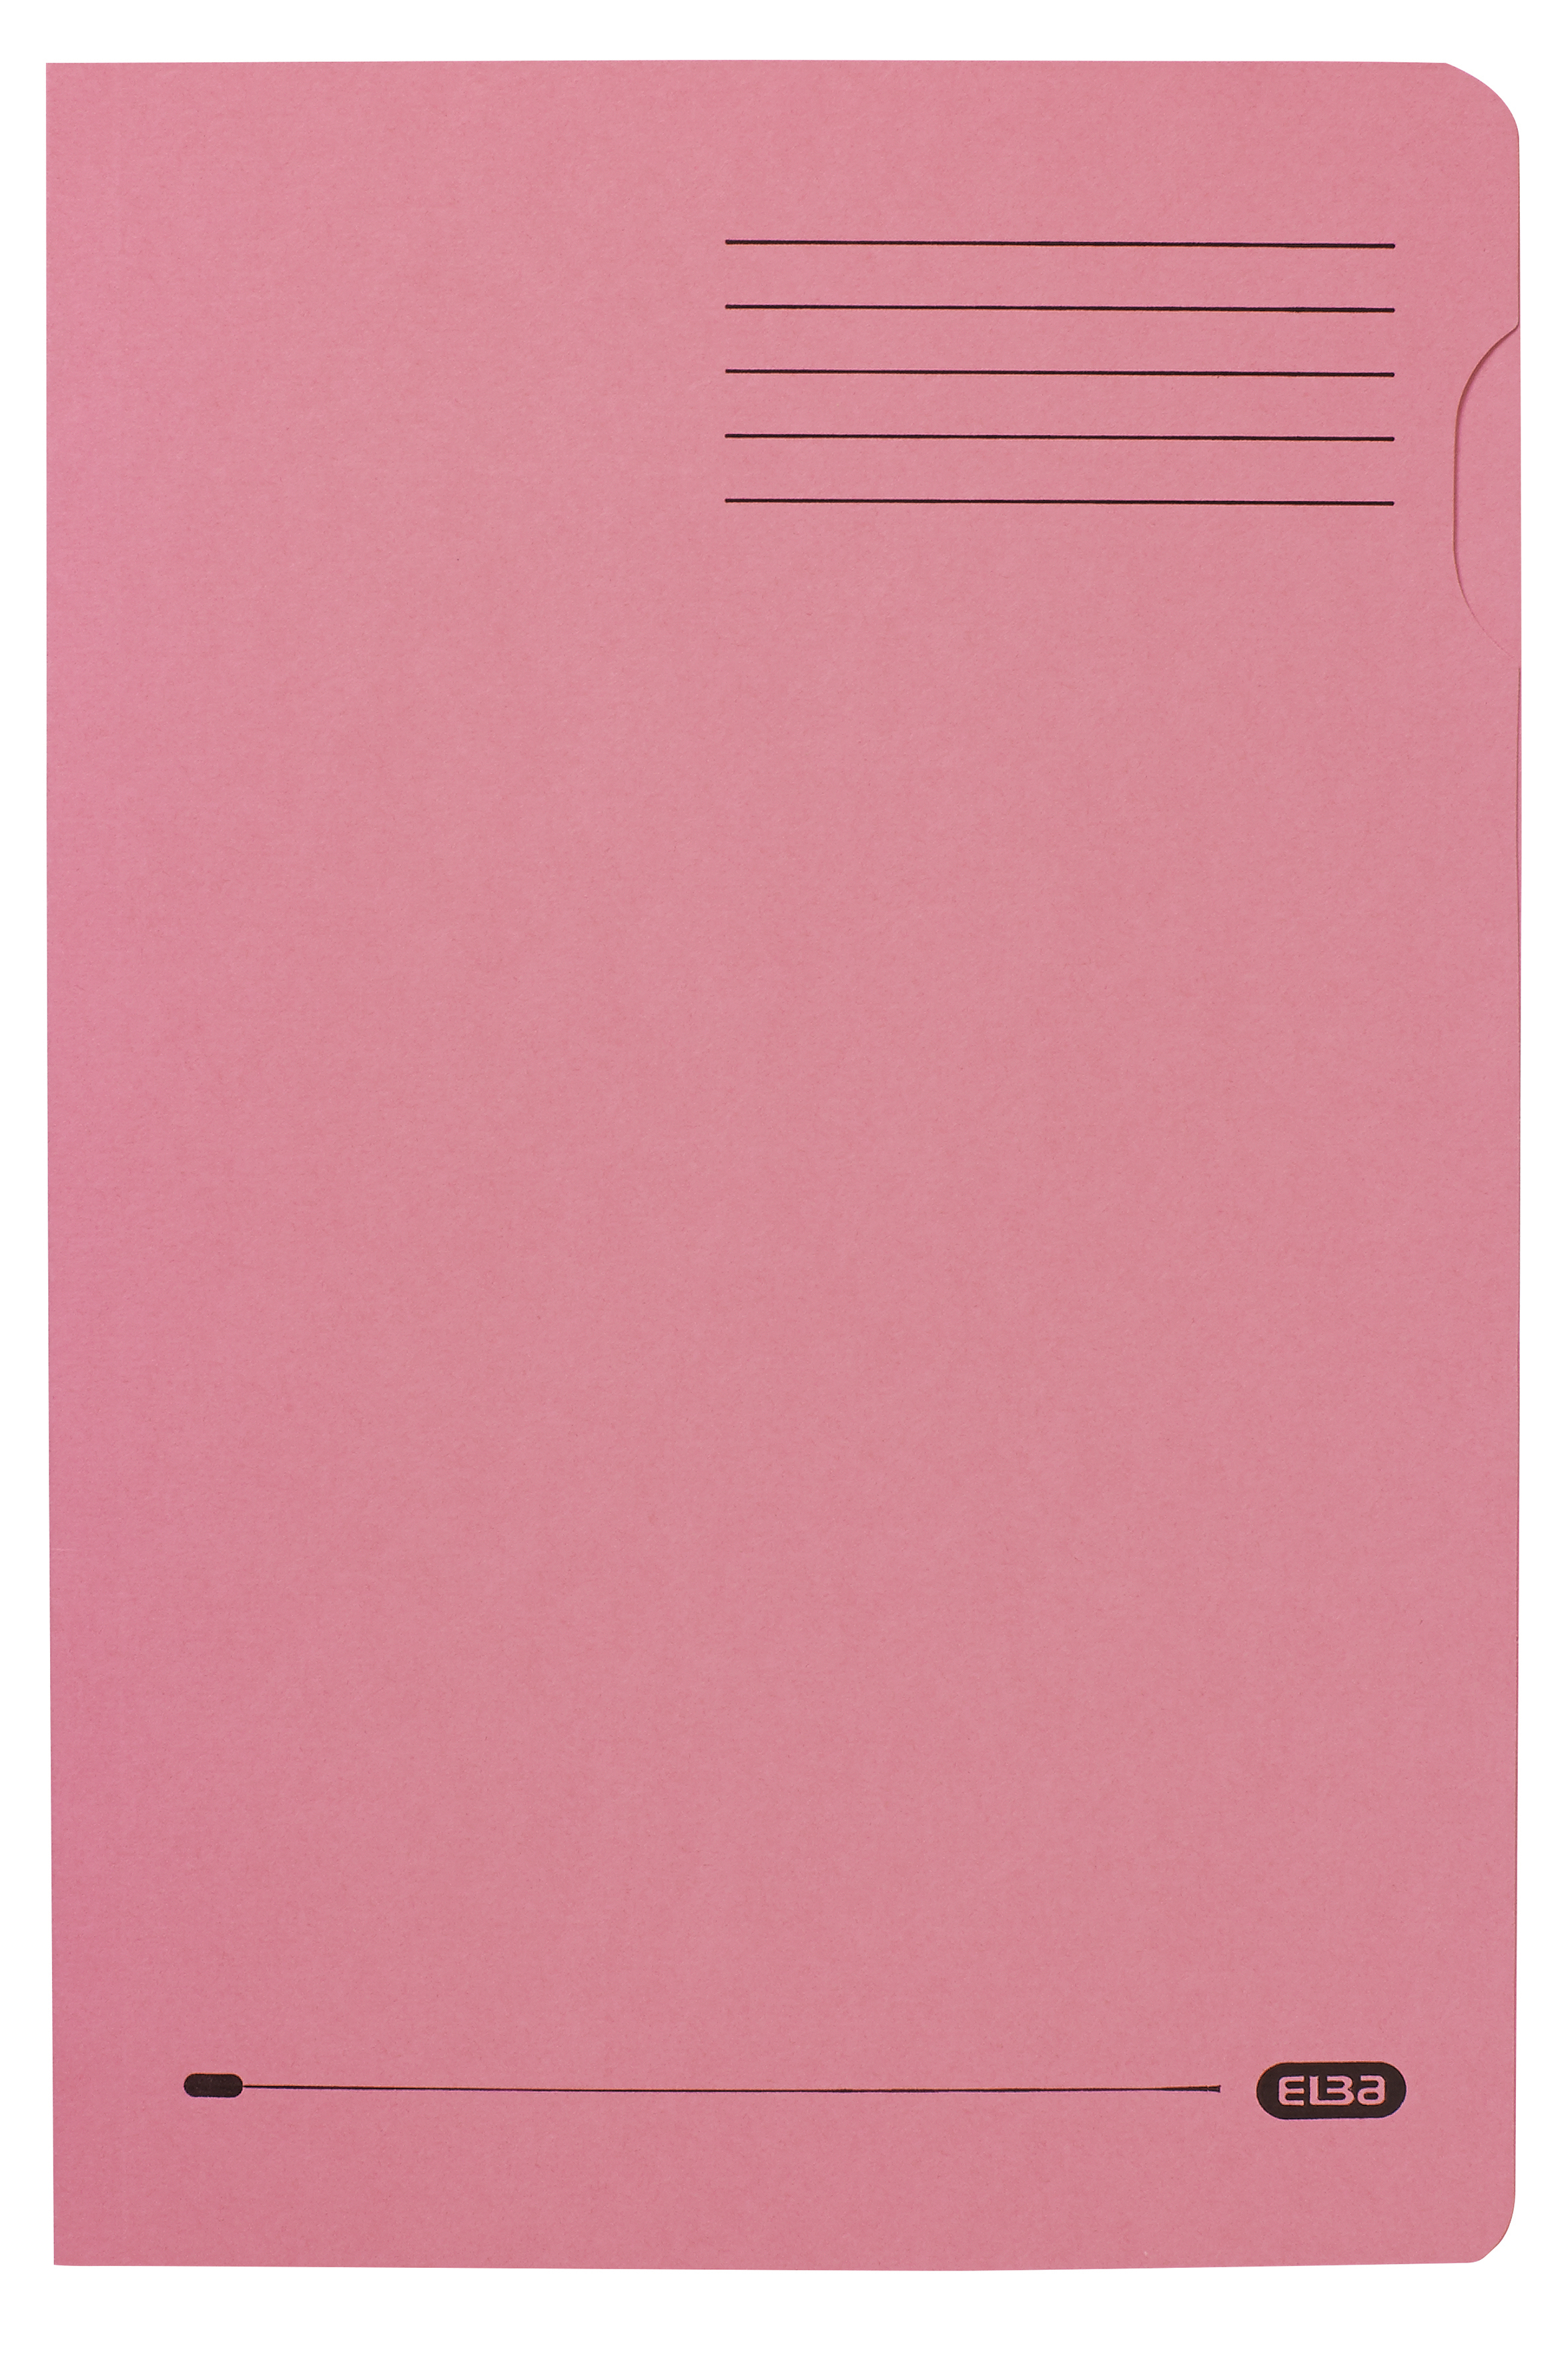 Elba Square Cut Folder Recycled Heavyweight 290gsm Foolscap Pink Ref 100090221 [Pack 100]